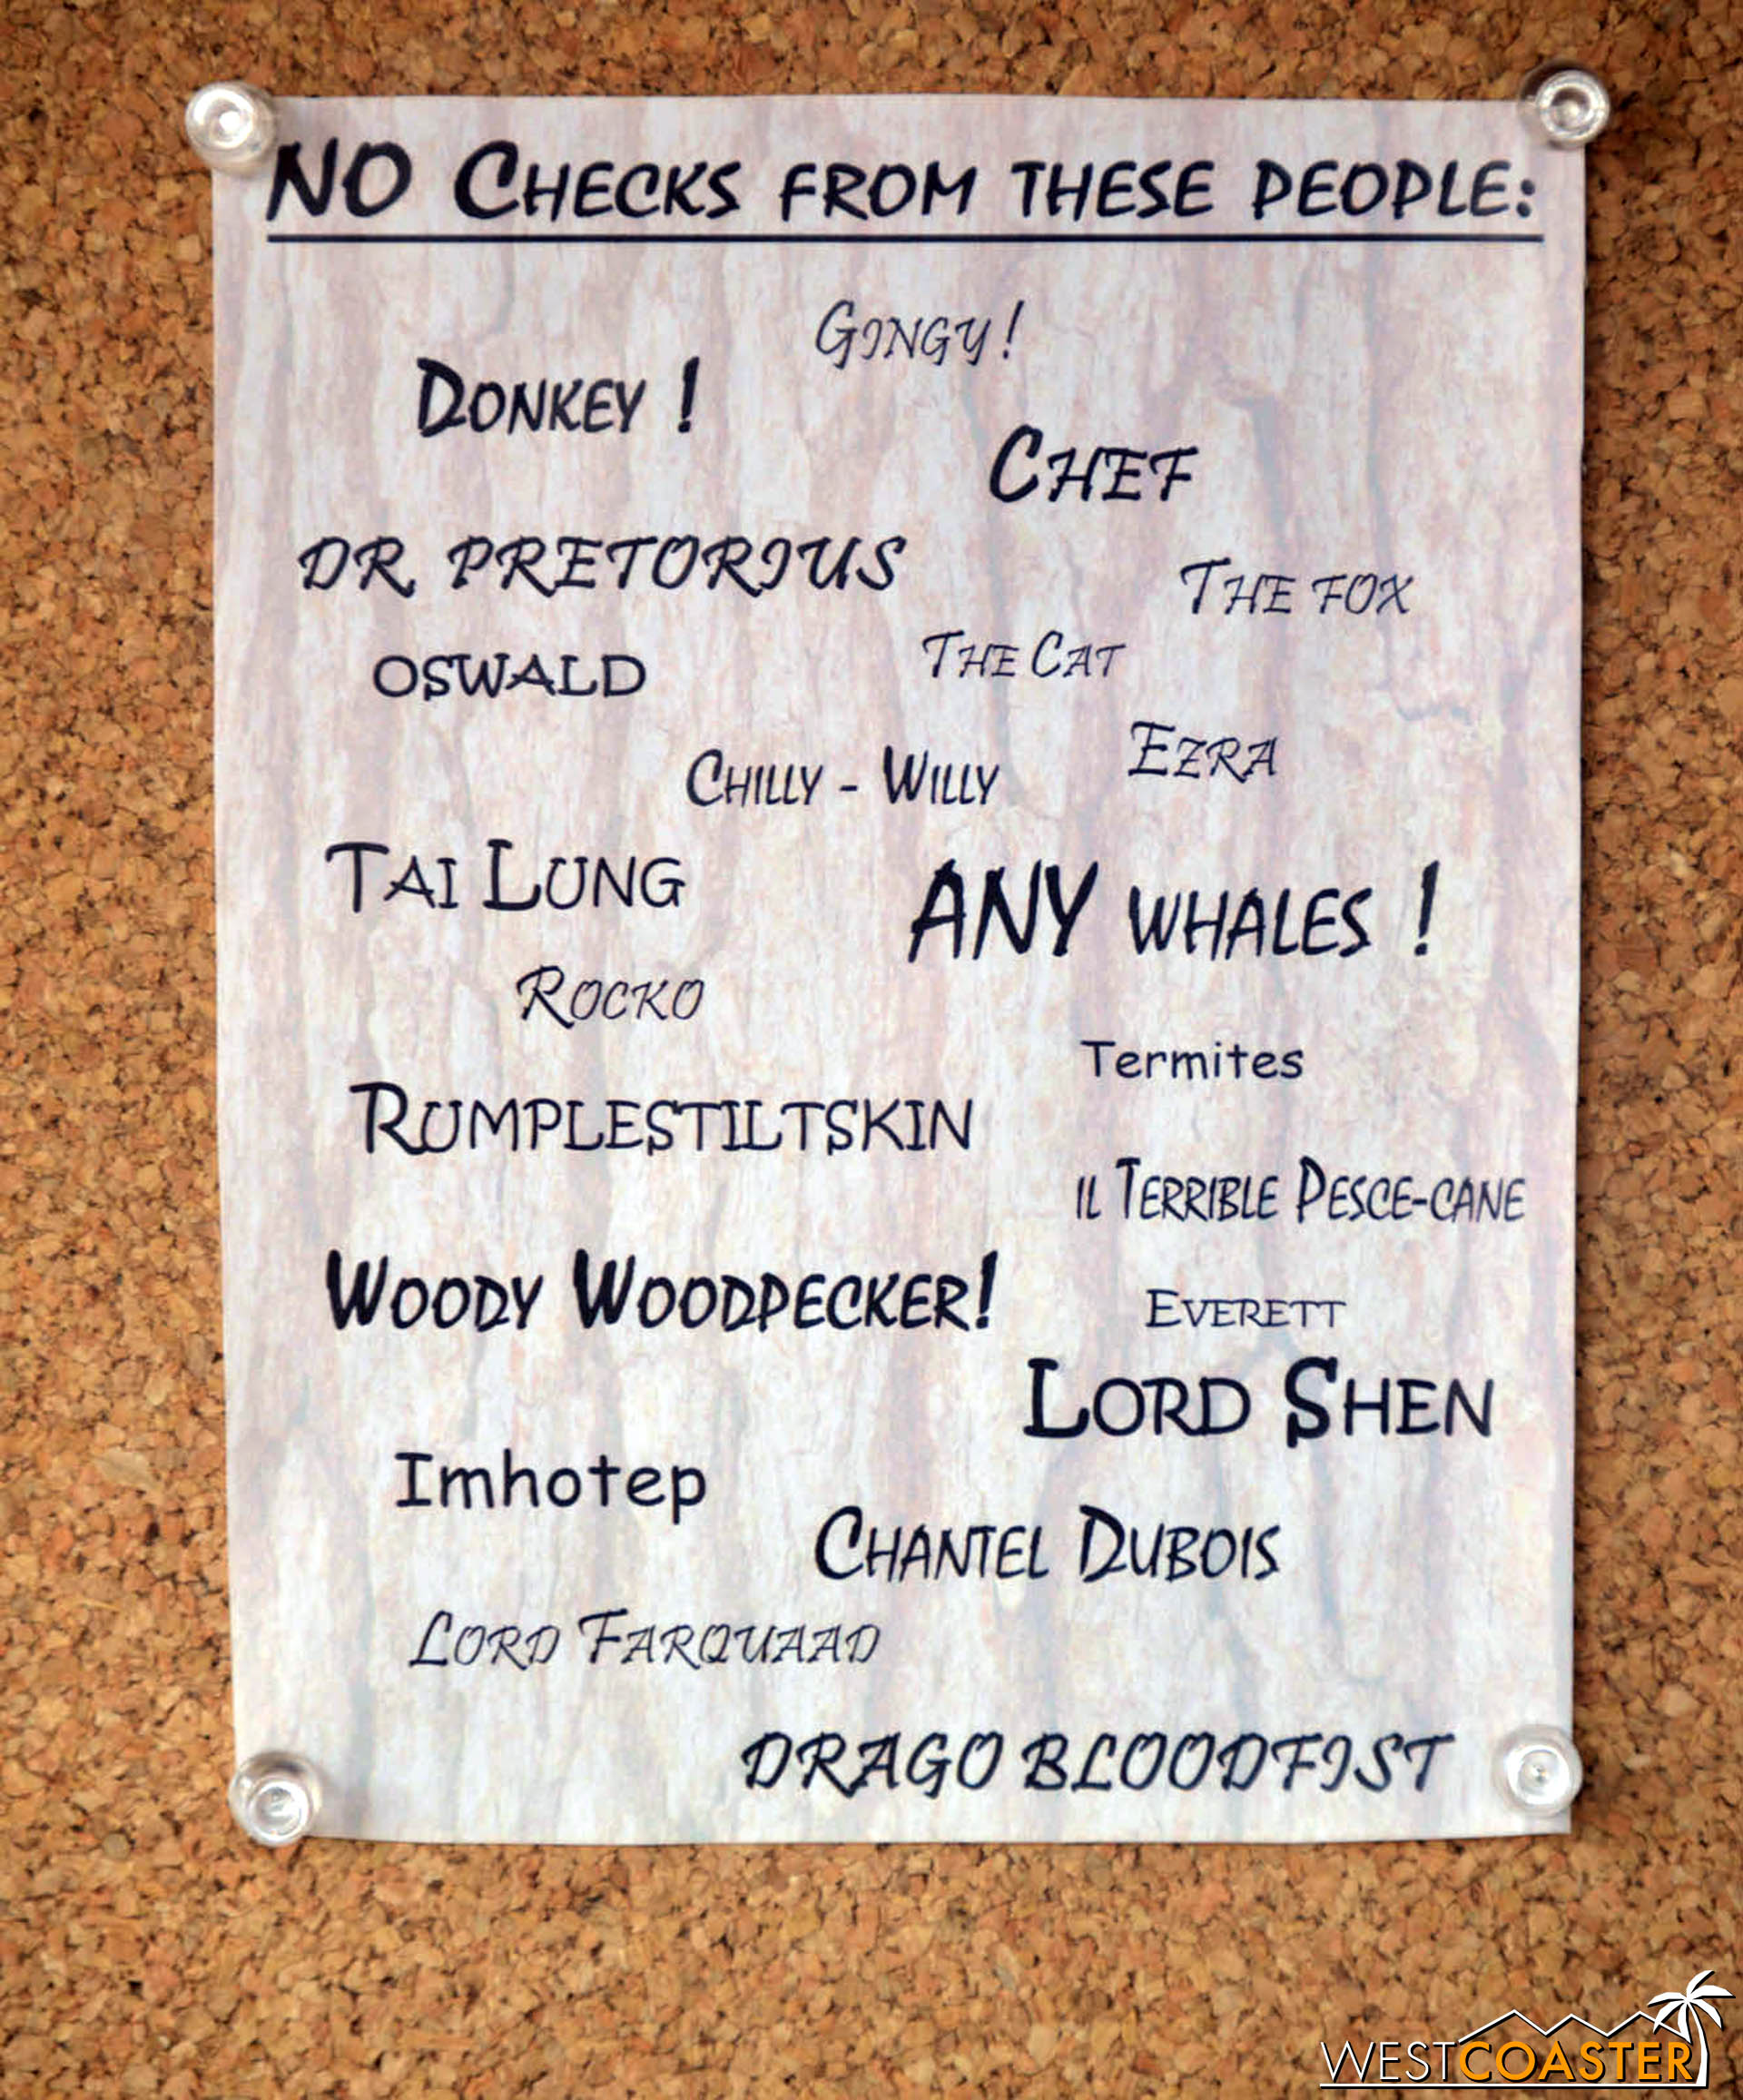 Some humorous blacklisted names on the sign behind Pinocchio.